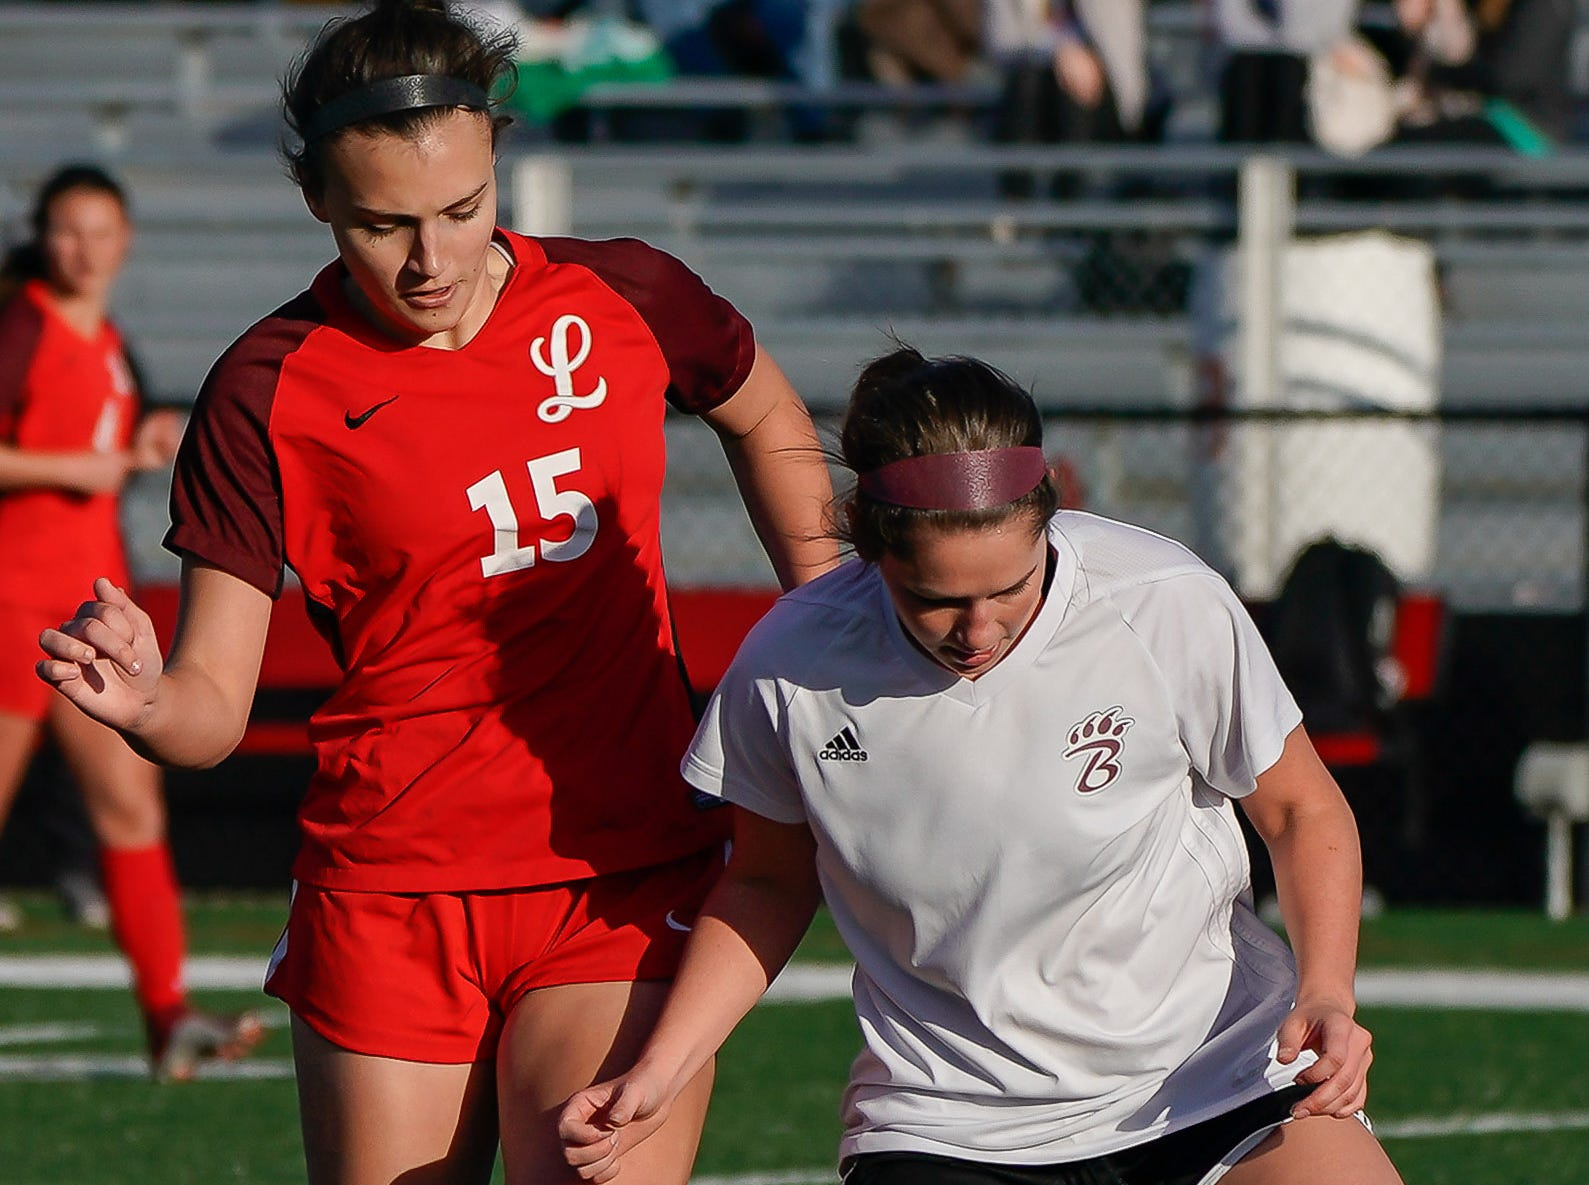 Lafayette's Hudson Lindsay (15) goes after a ball against Long Beach's Alexa Beets (6) during the MHSAA 5A Girls Soccer Championships held at Brandon High School in Brandon, MS, Saturday February 9, 2019.(Bob Smith-For The Clarion Ledger)